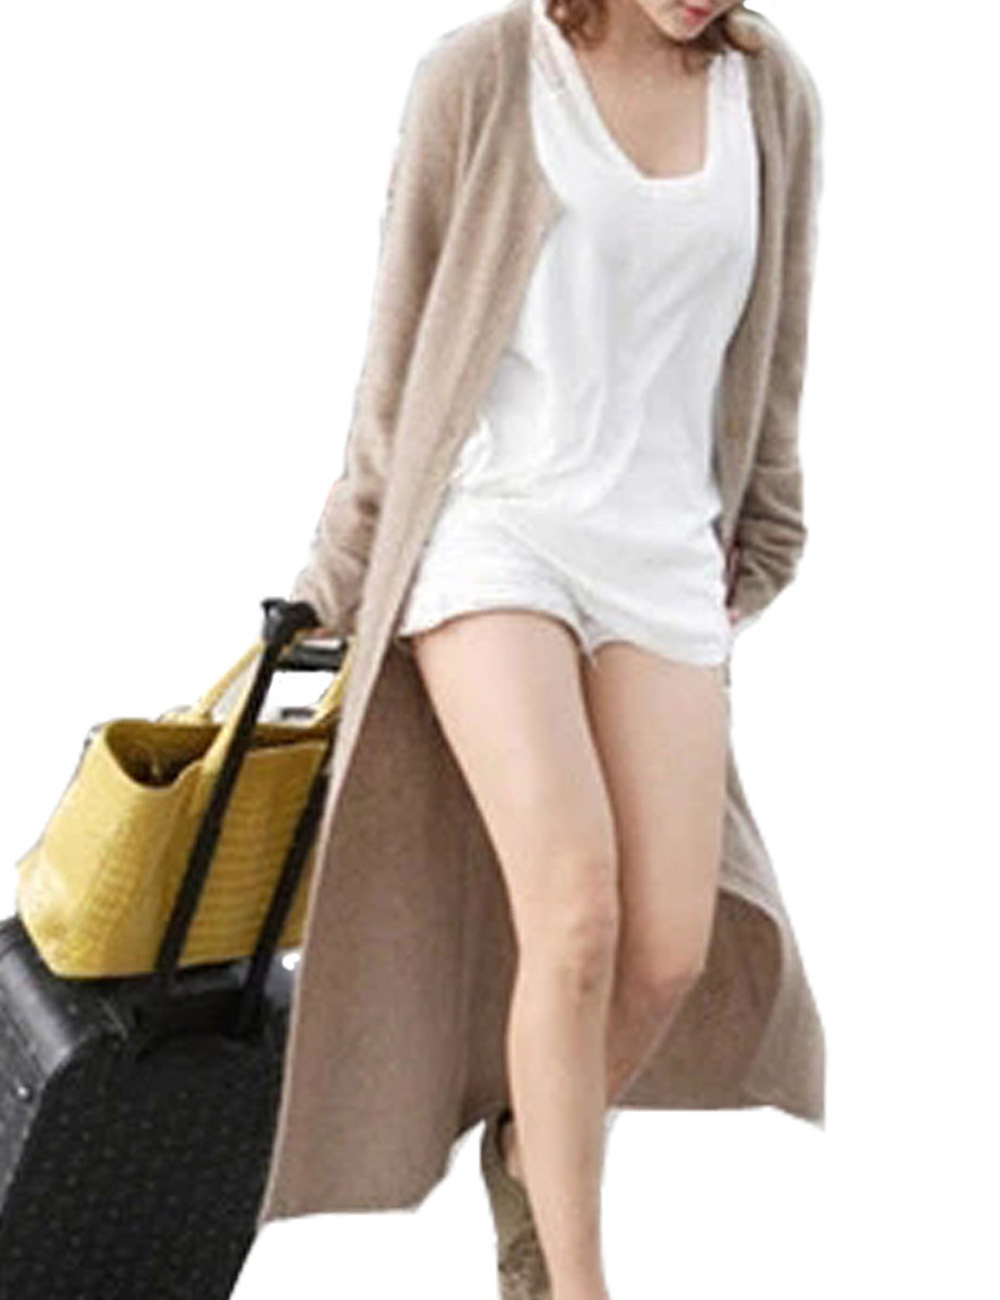 New winter Autumn Cashmere Cardigan Long Sweater Single Breasted Warm Woolen Knitted Sweaters O-Neck Designer Cardigans Women(China (Mainland))